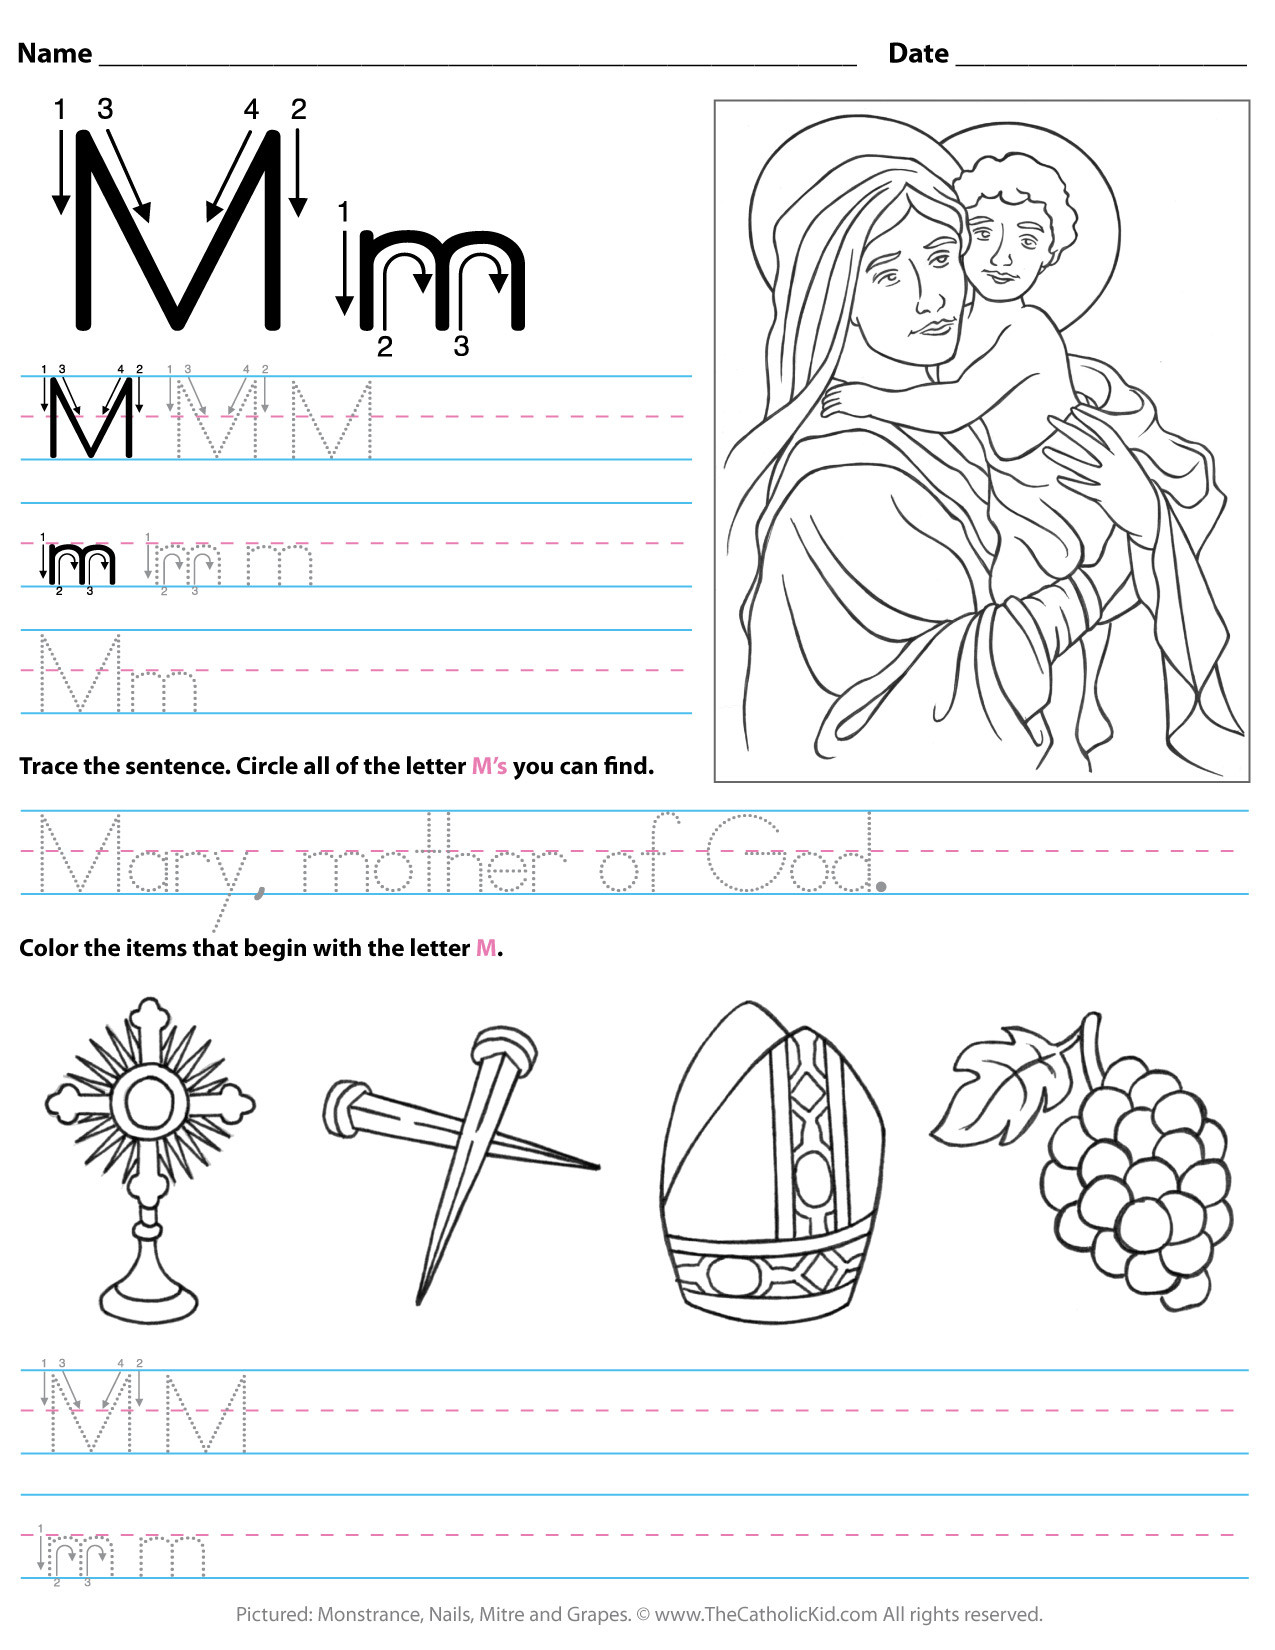 Letter M Worksheets for Preschoolers Catholic Alphabet Letter M Worksheet Preschool Kindergarten